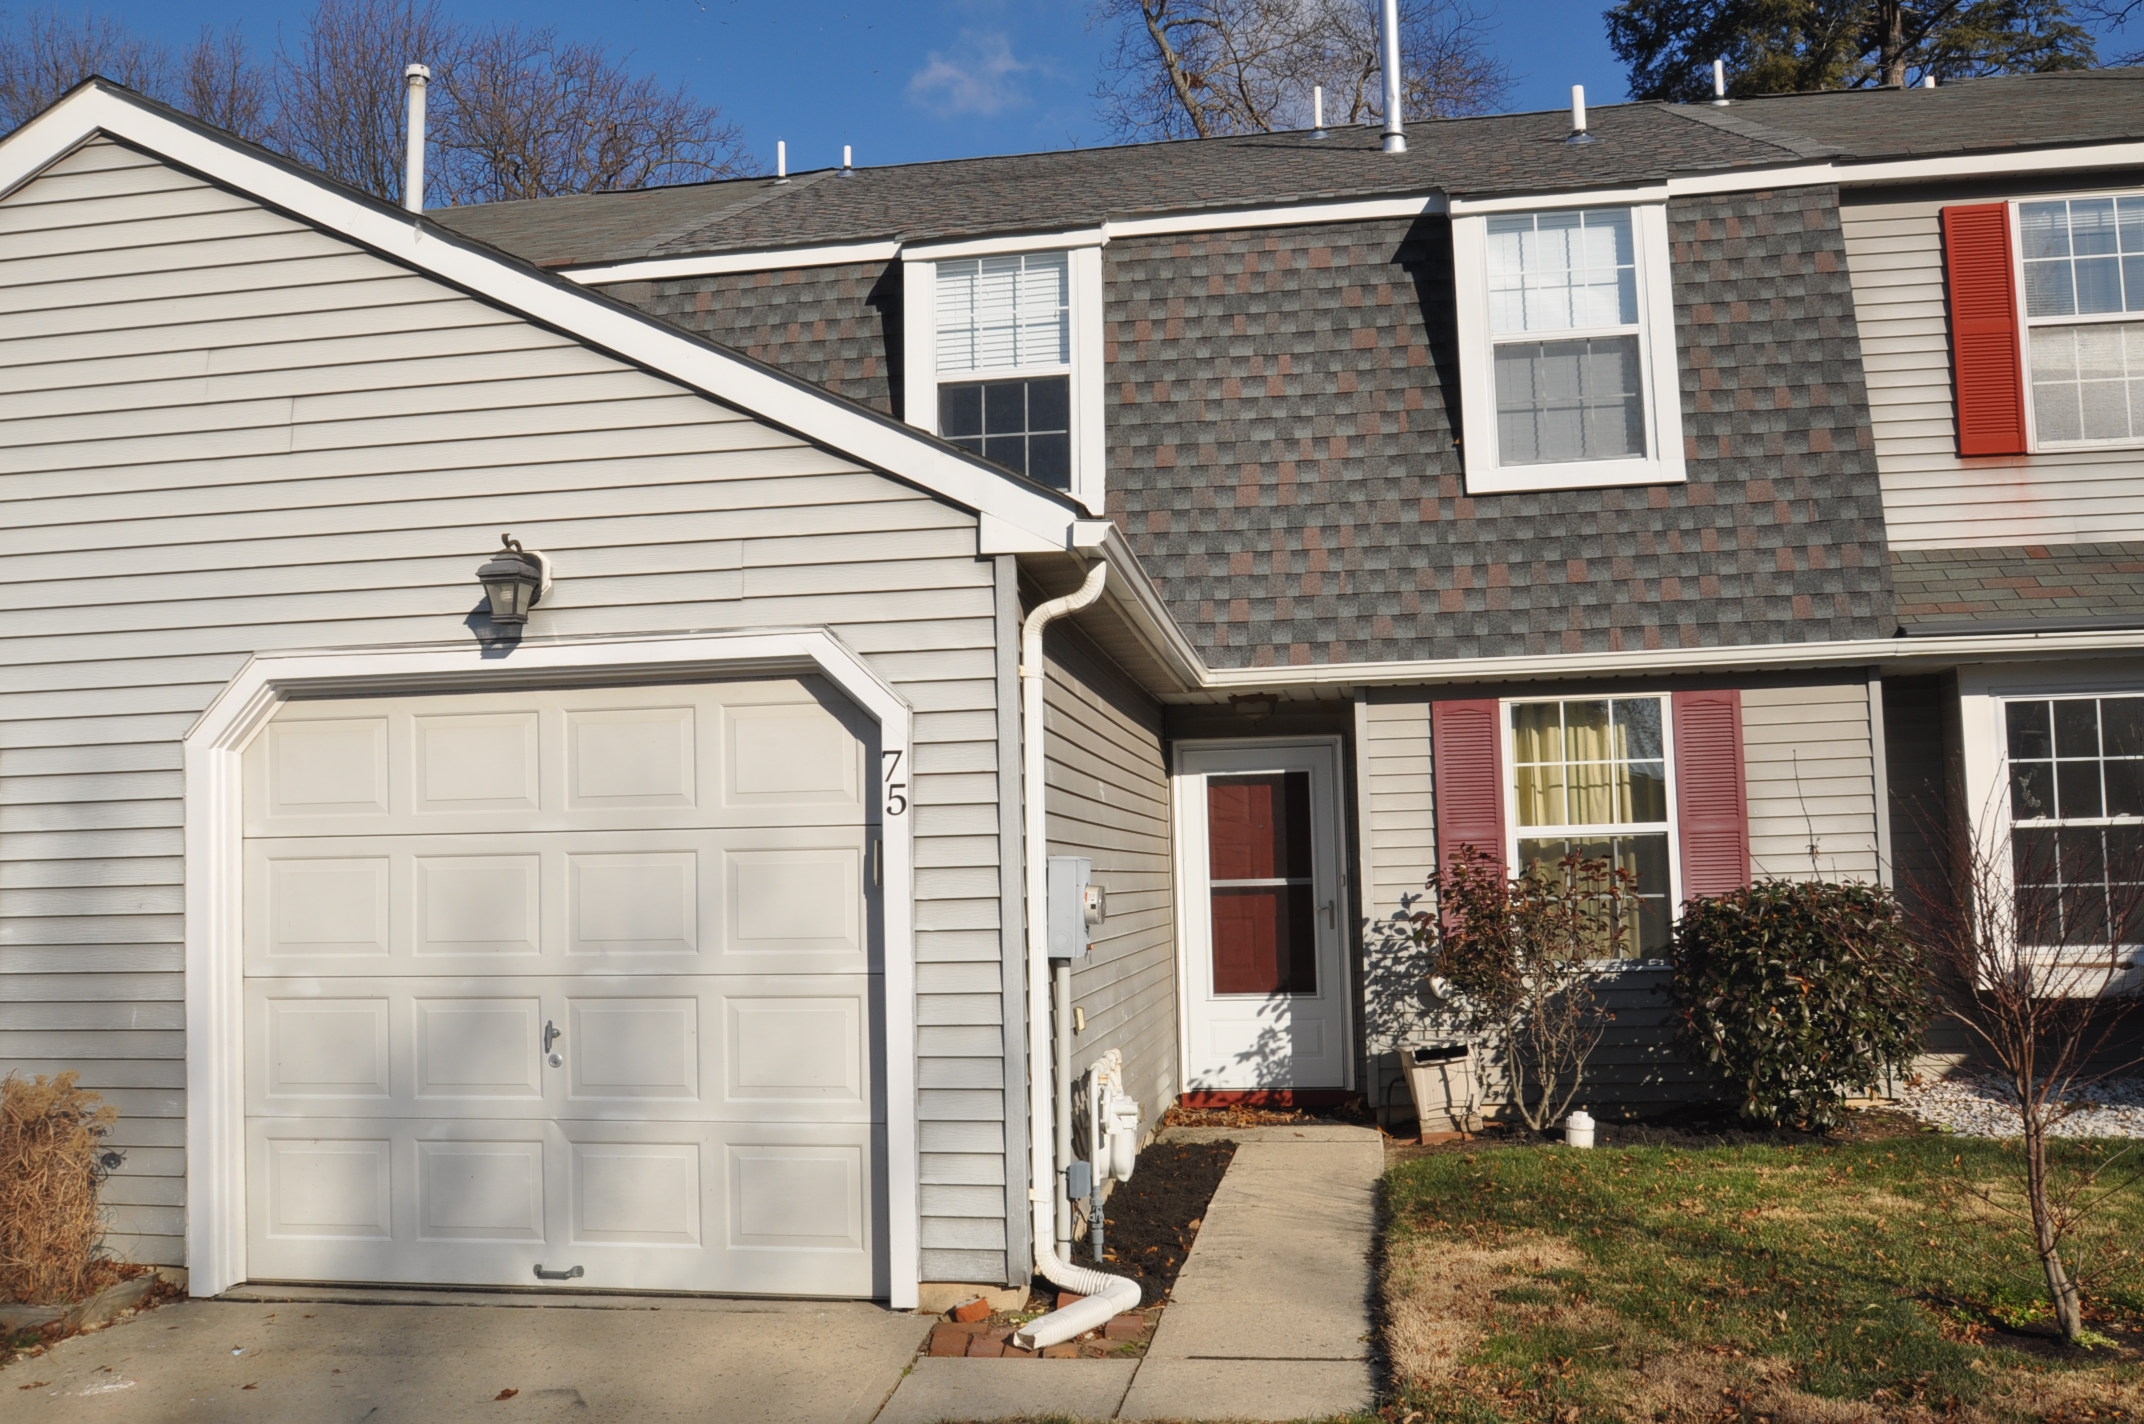 75 River Bank Dr, Roebling, New Jersey 08554